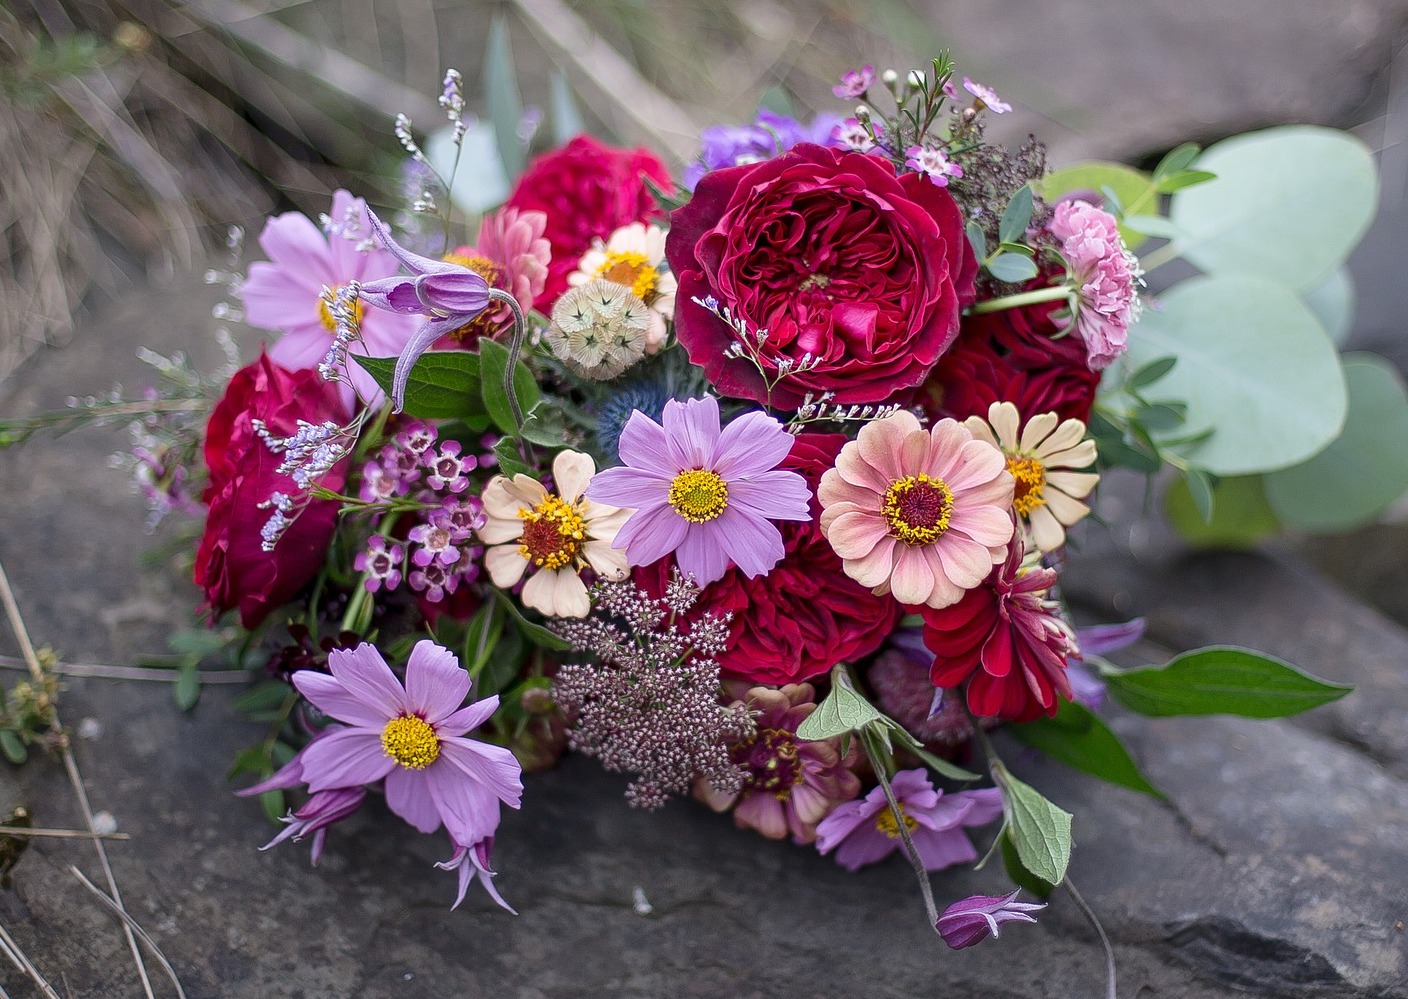 How to Make a Flower Bouquet | The Old Farmer's Almanac